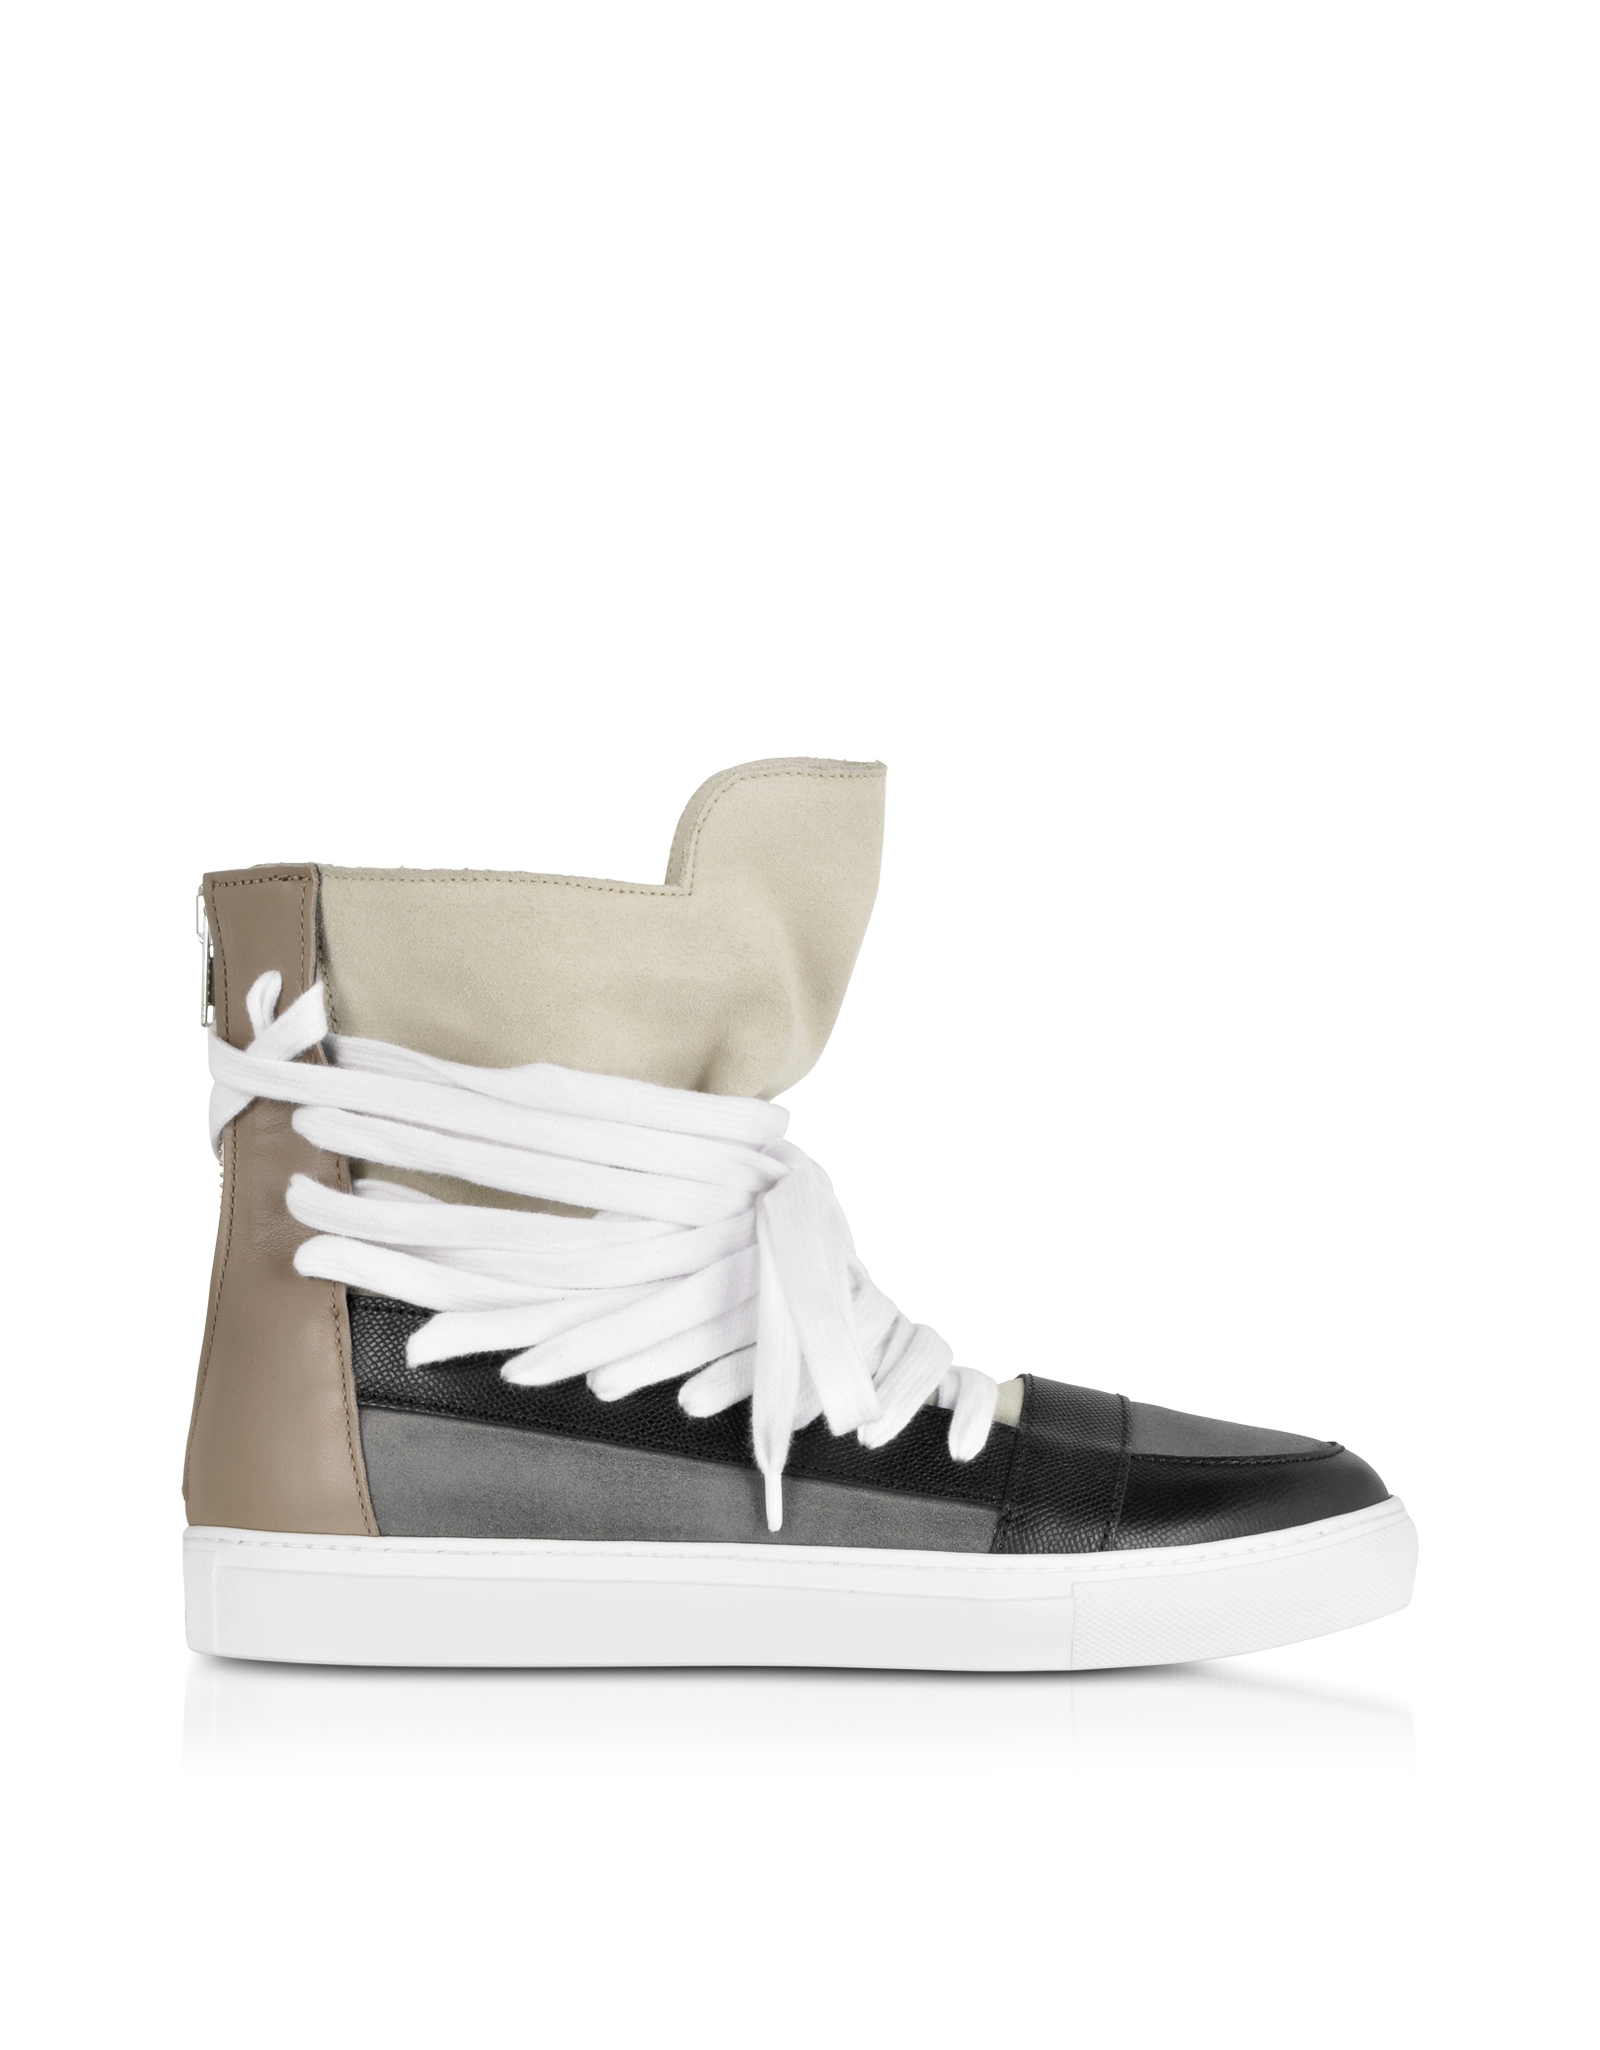 769ed1deb14918 Kris Van Assche Color Block Suede and Leather High Top Sneaker in ...